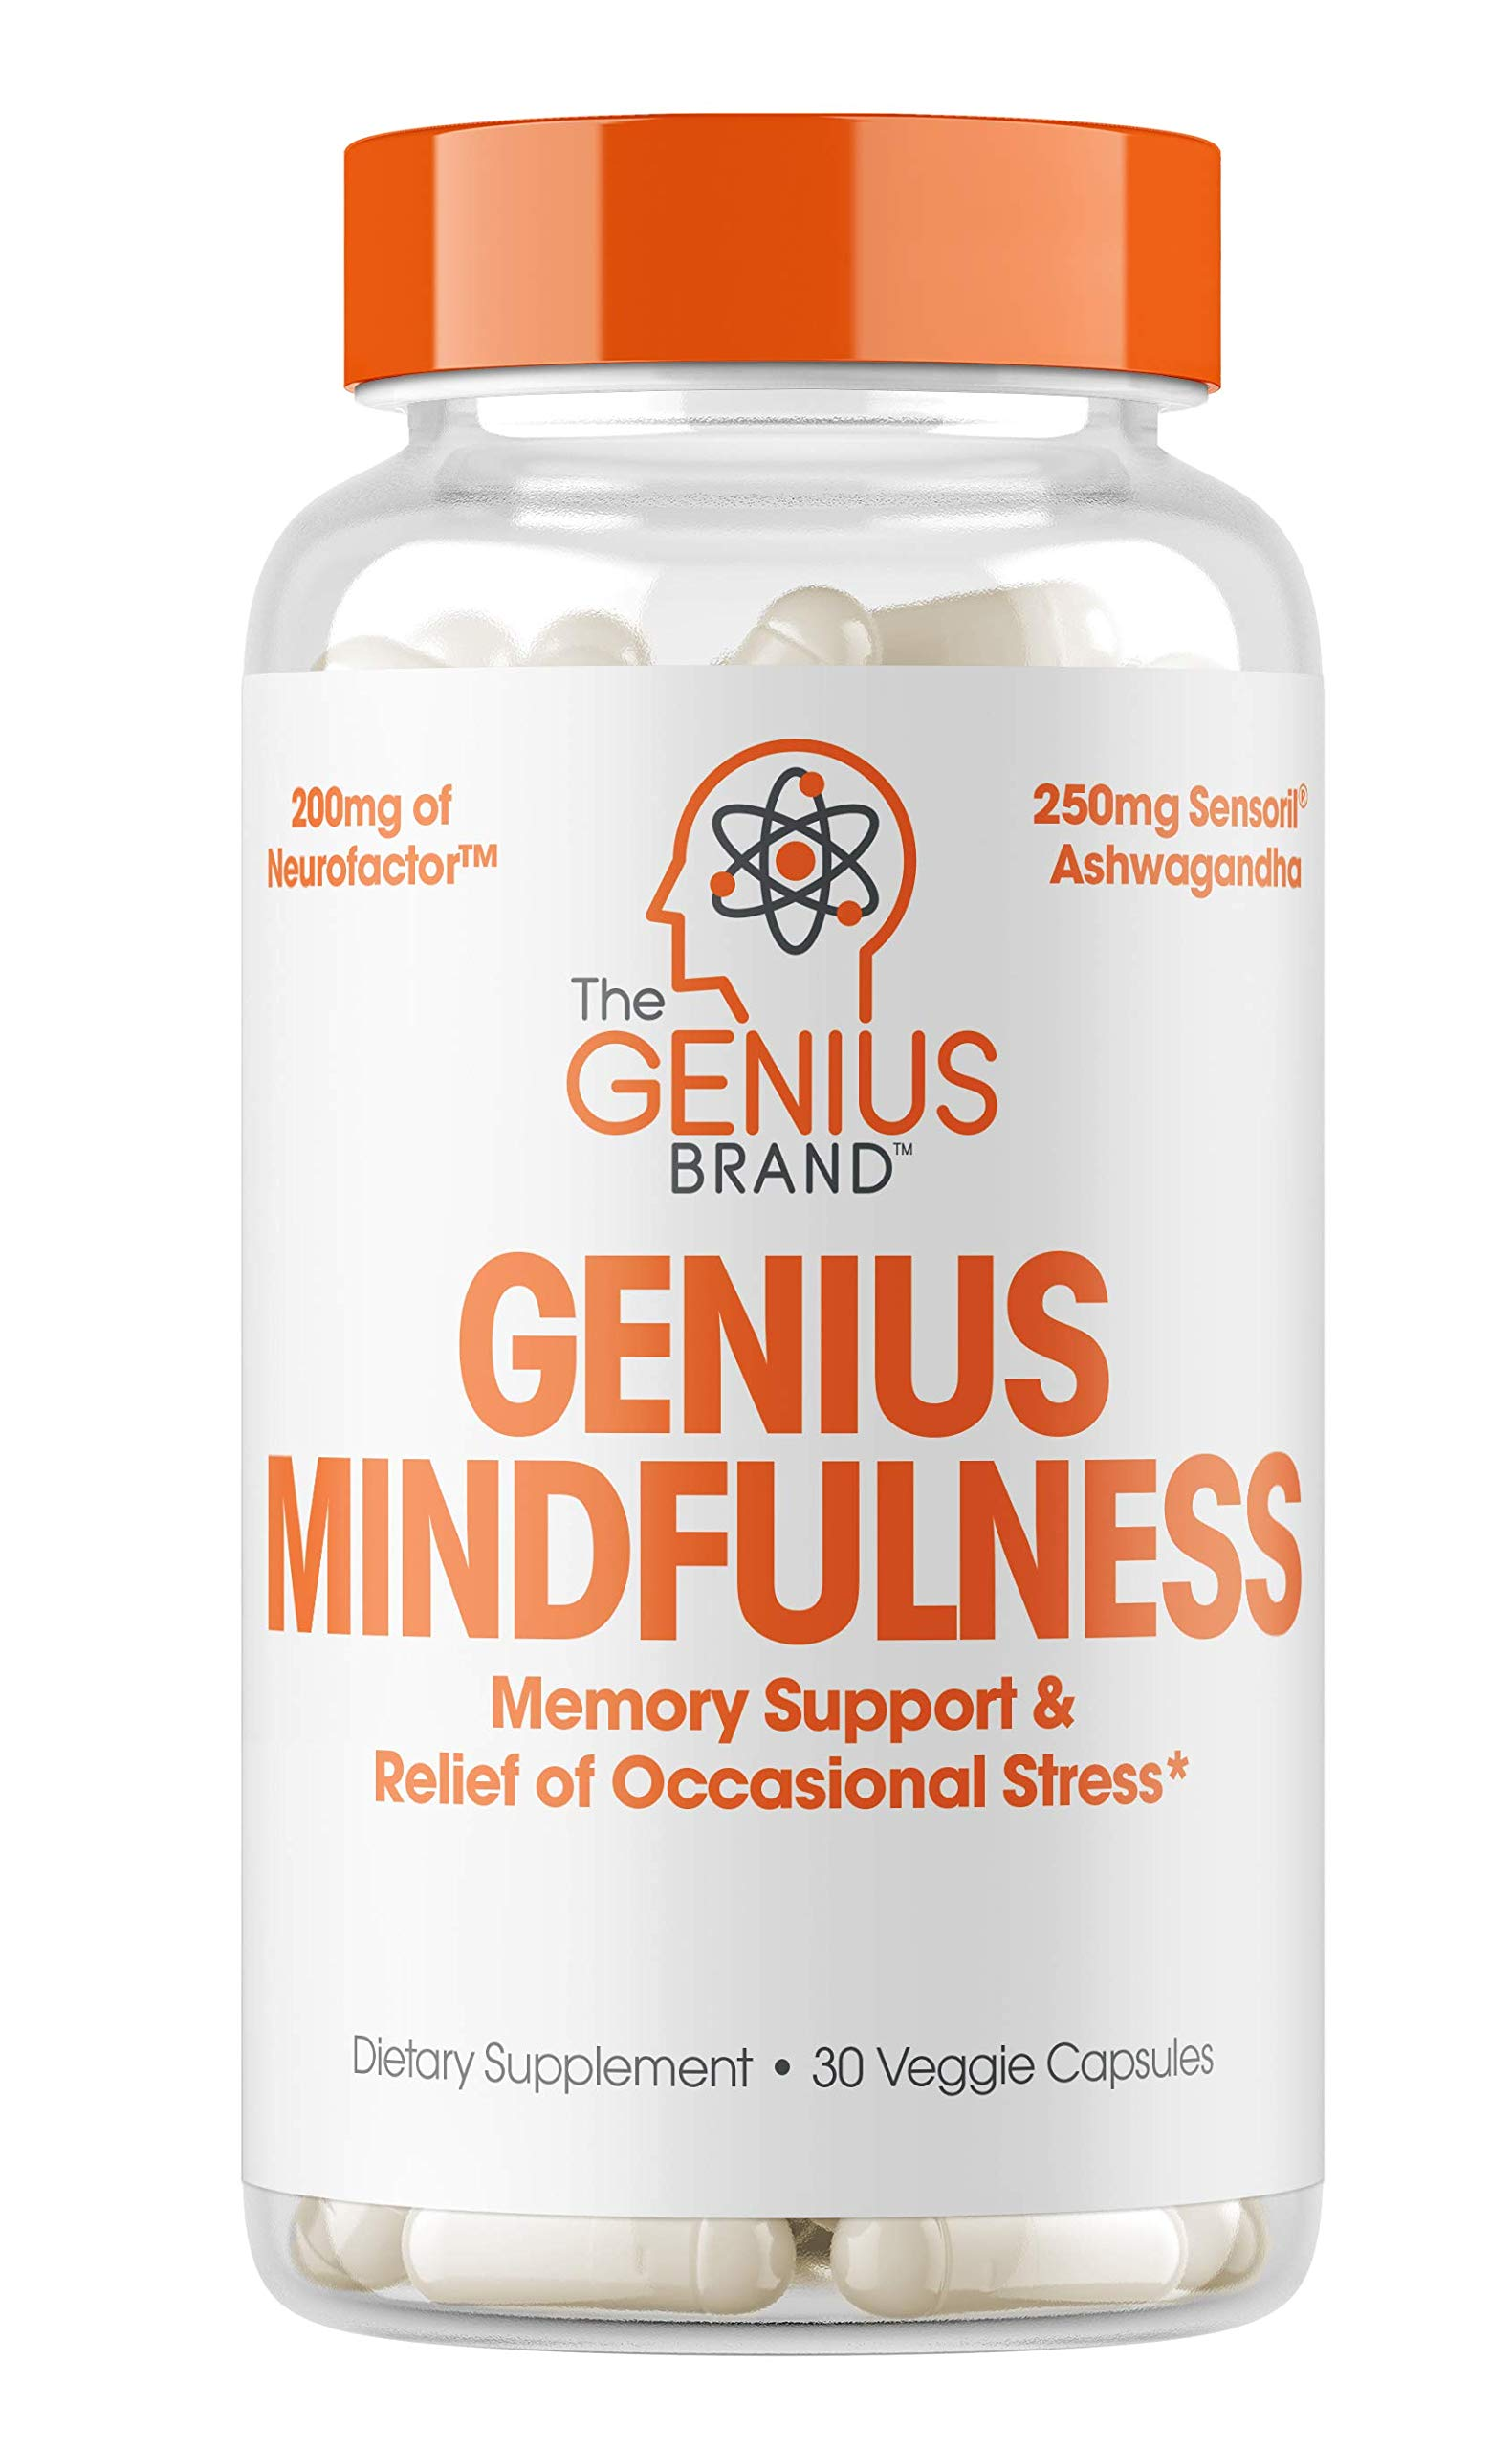 Genius Stress & Anxiety Relief Supplement w/ Ashwagandha, Nootropic Brain Booster & Memory Support w/ blueberry extract, Natural Focus, Energy & Serotonin, Calm Adrenal Fatigue & Cortisol 30 Capsules